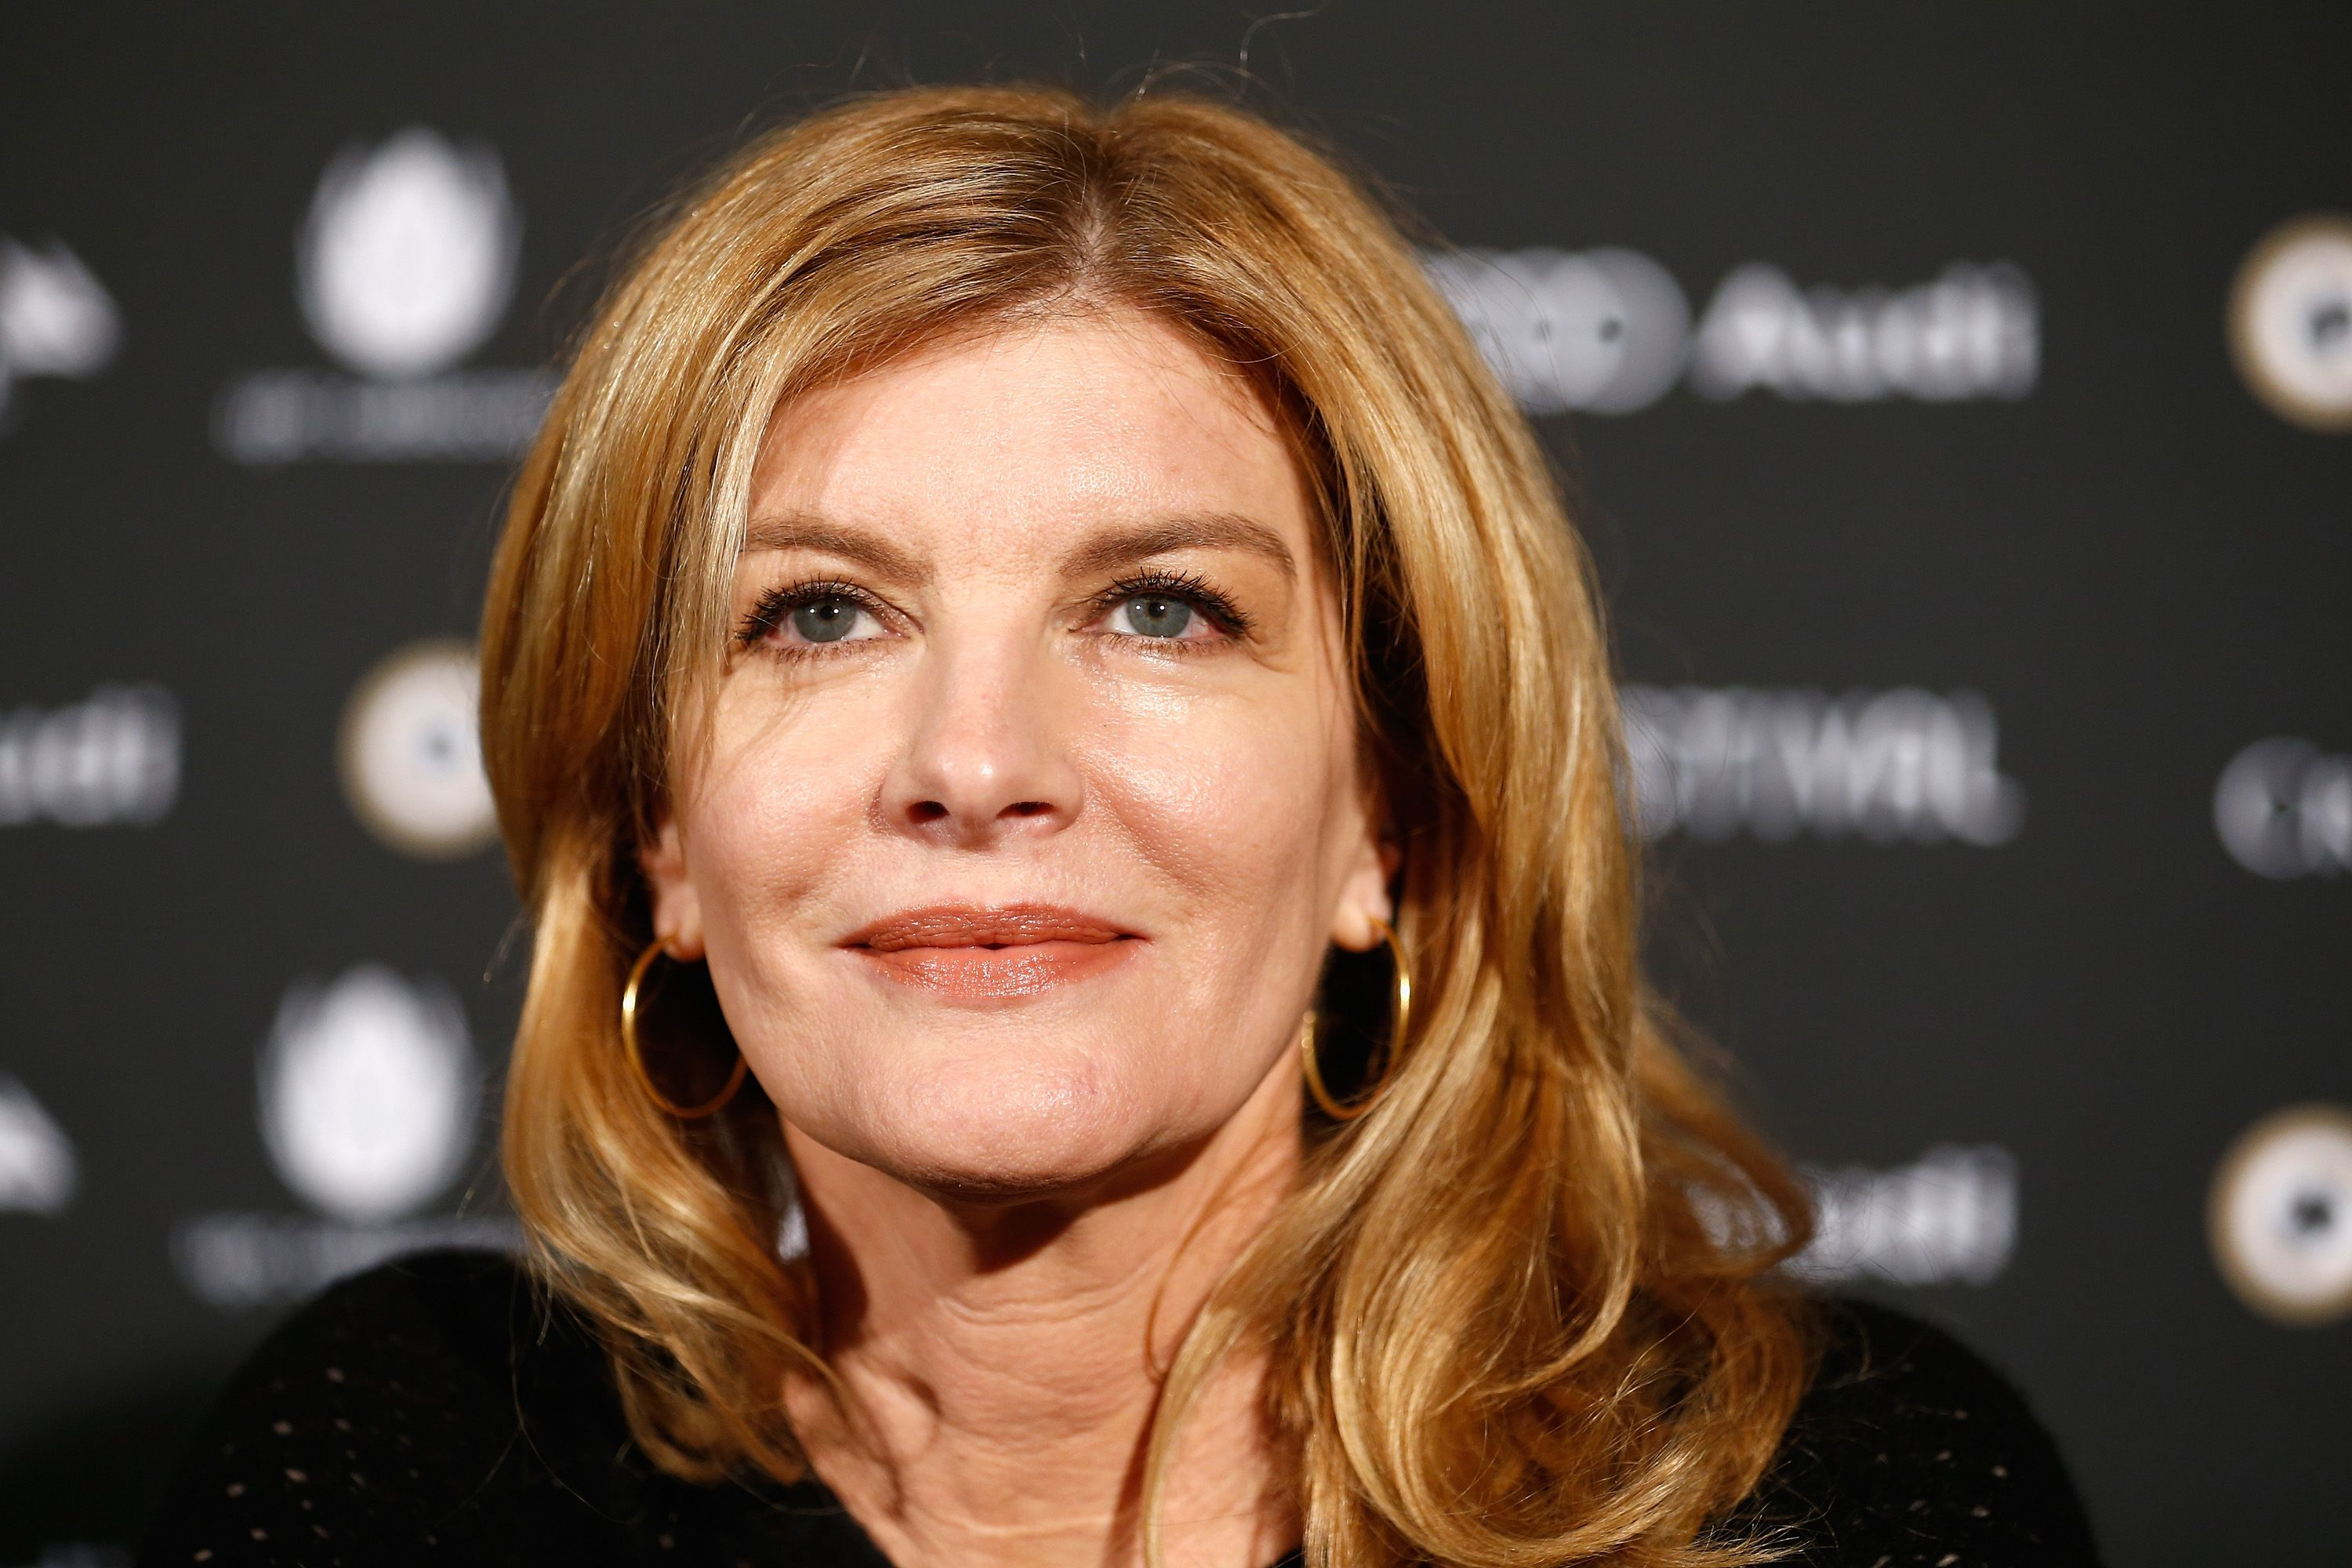 """Rene Russo at the """"Nightcrawler"""" press conference at the Zurich Film Festival in 2014 in Switzerland 